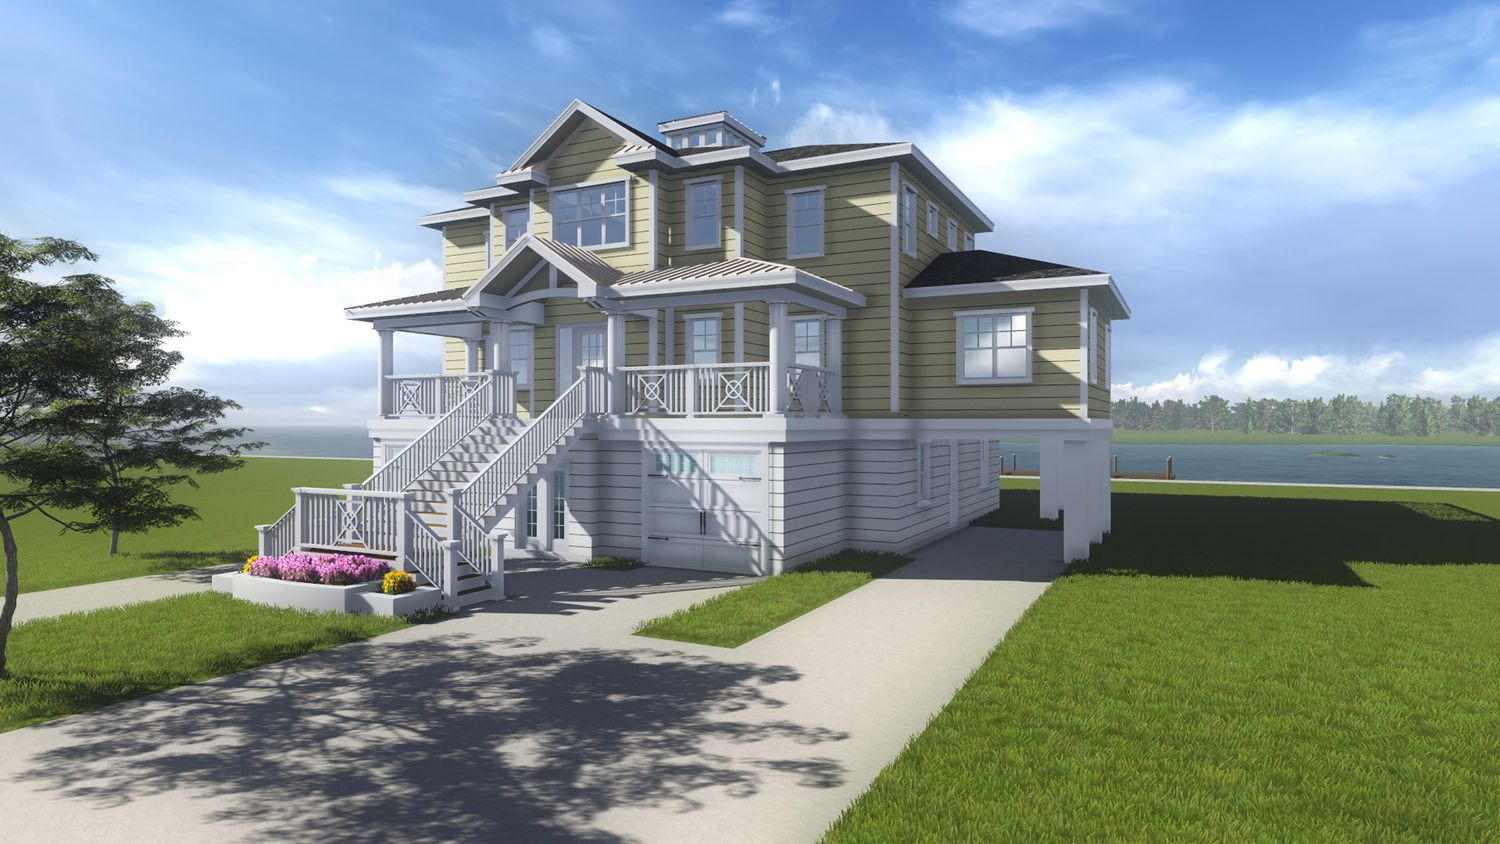 The hatteras home plan by turnstone custom homes in 1 for Custom beach house plans